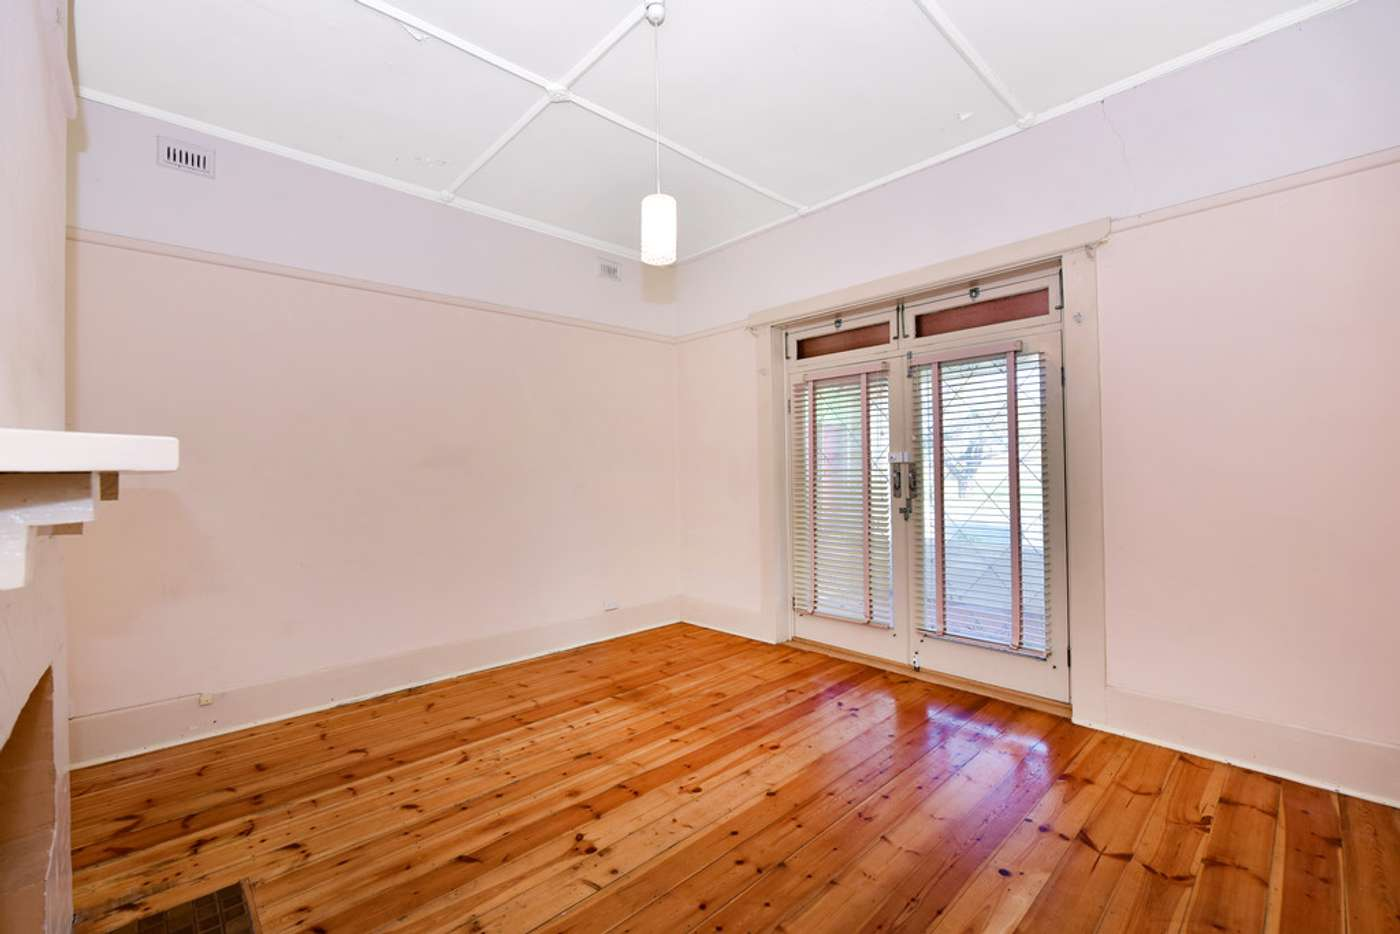 Sixth view of Homely house listing, 64 Port Road, Alberton SA 5014